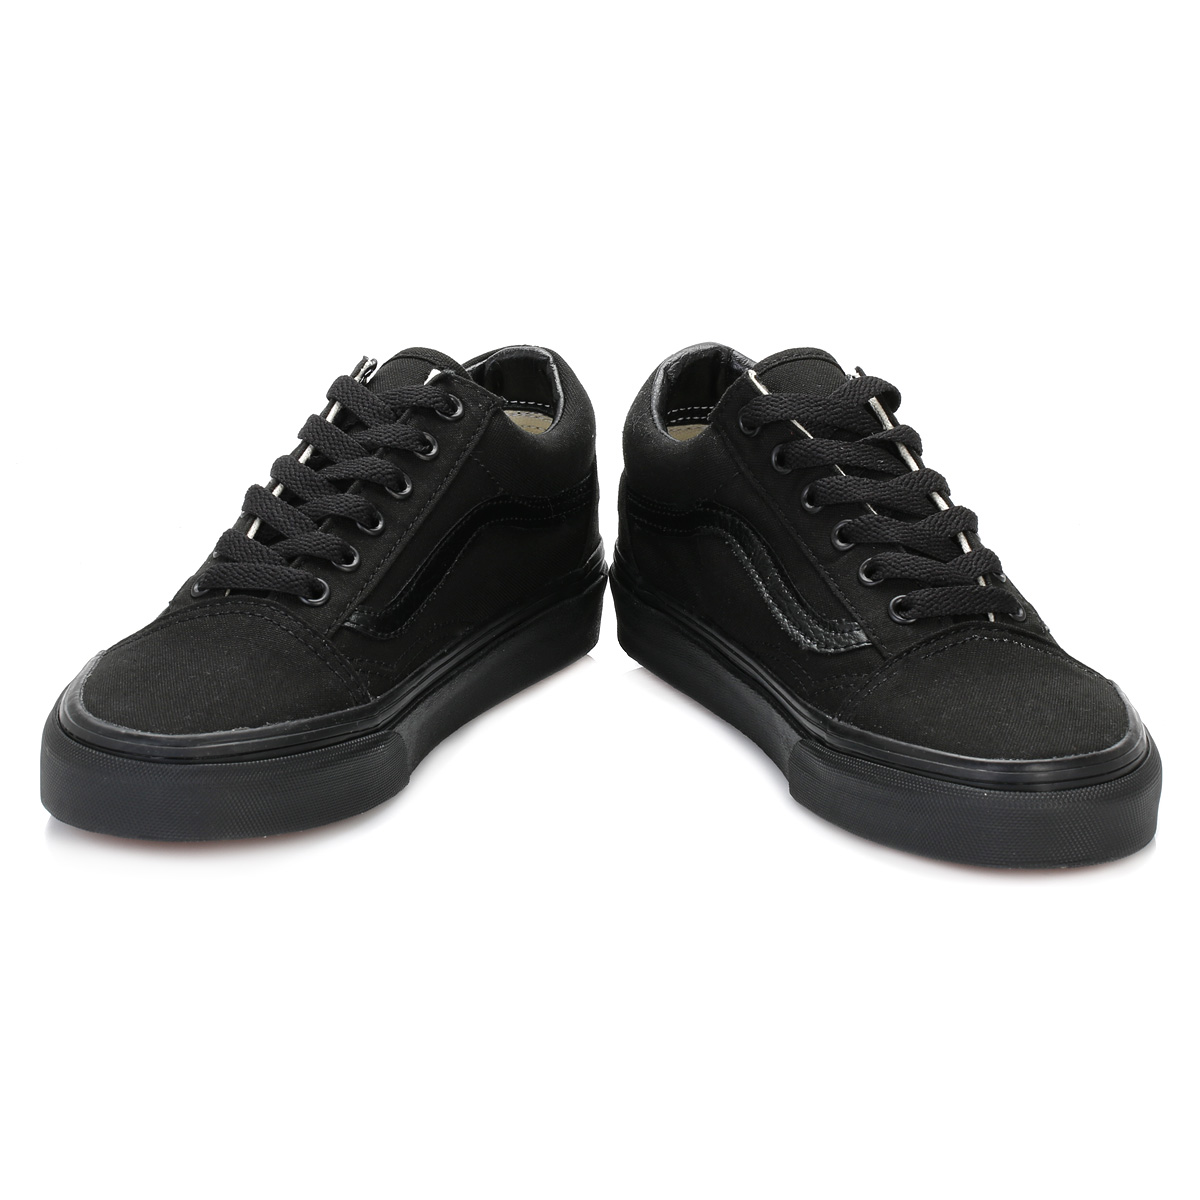 7ac791a21ad Vans Mens Womens Trainers Canvas Lace Up Old School Black Casual ...